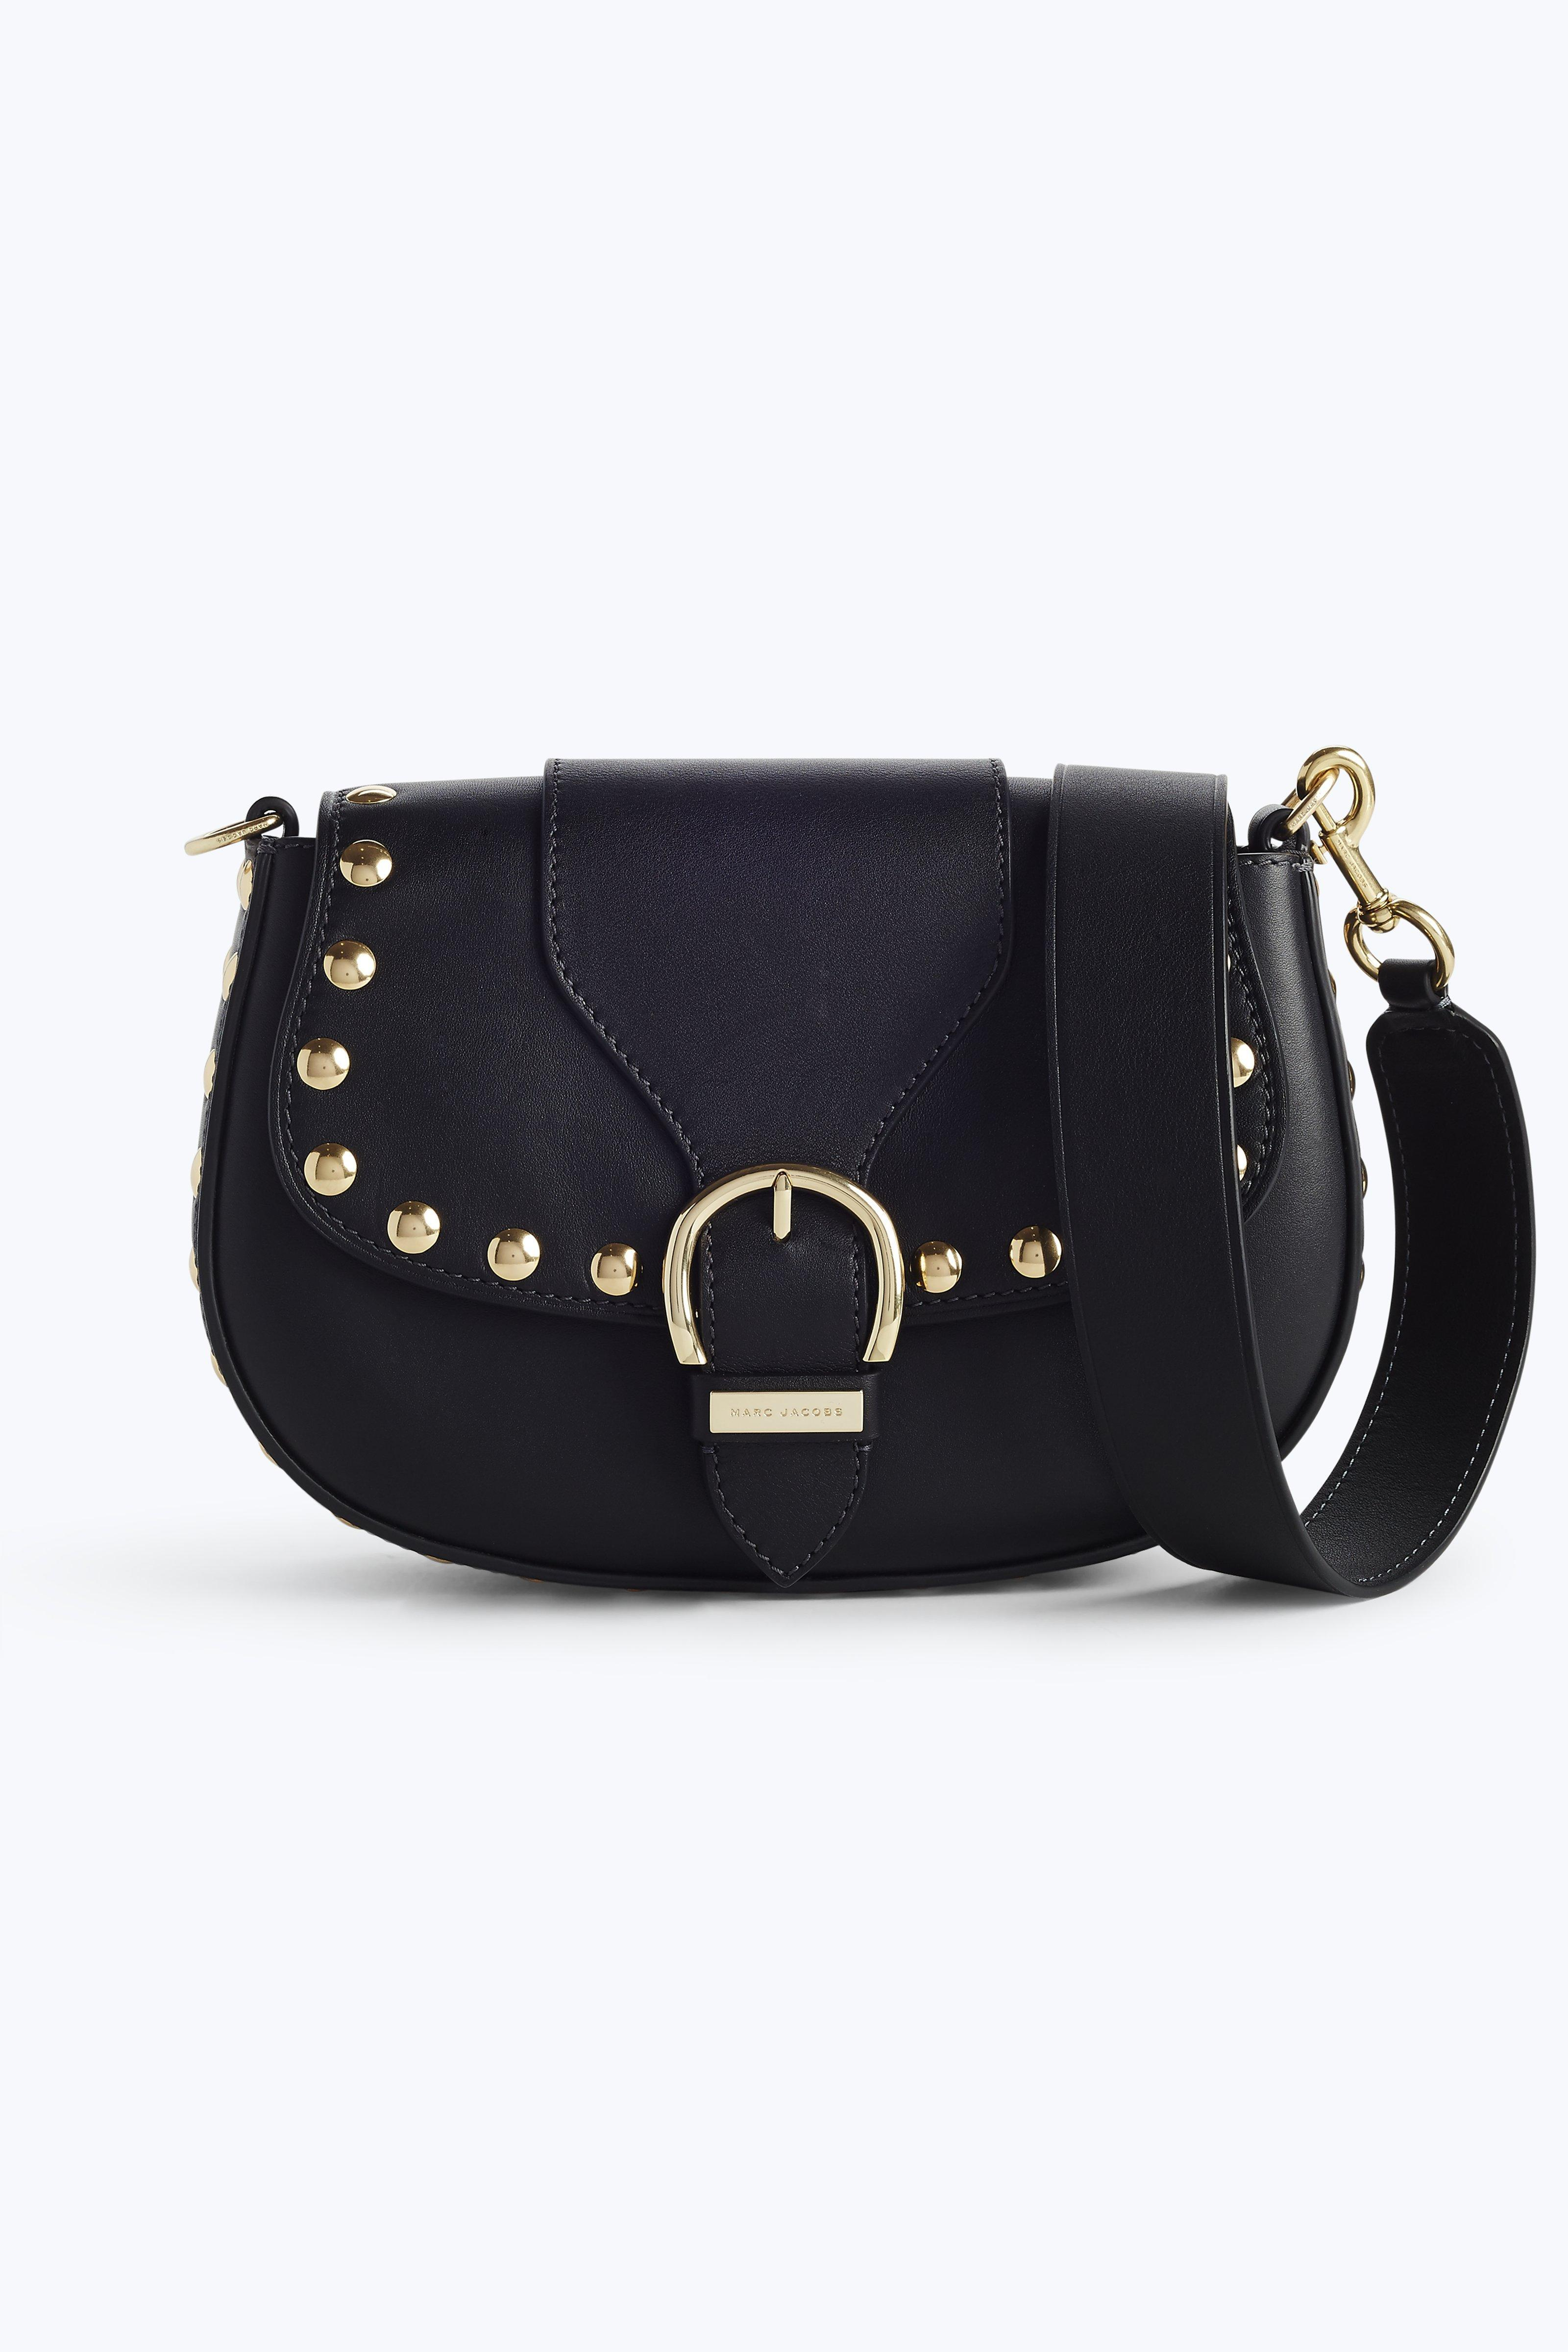 Marc Jacobs The Squeeze Shoulder Bag In Black Multi